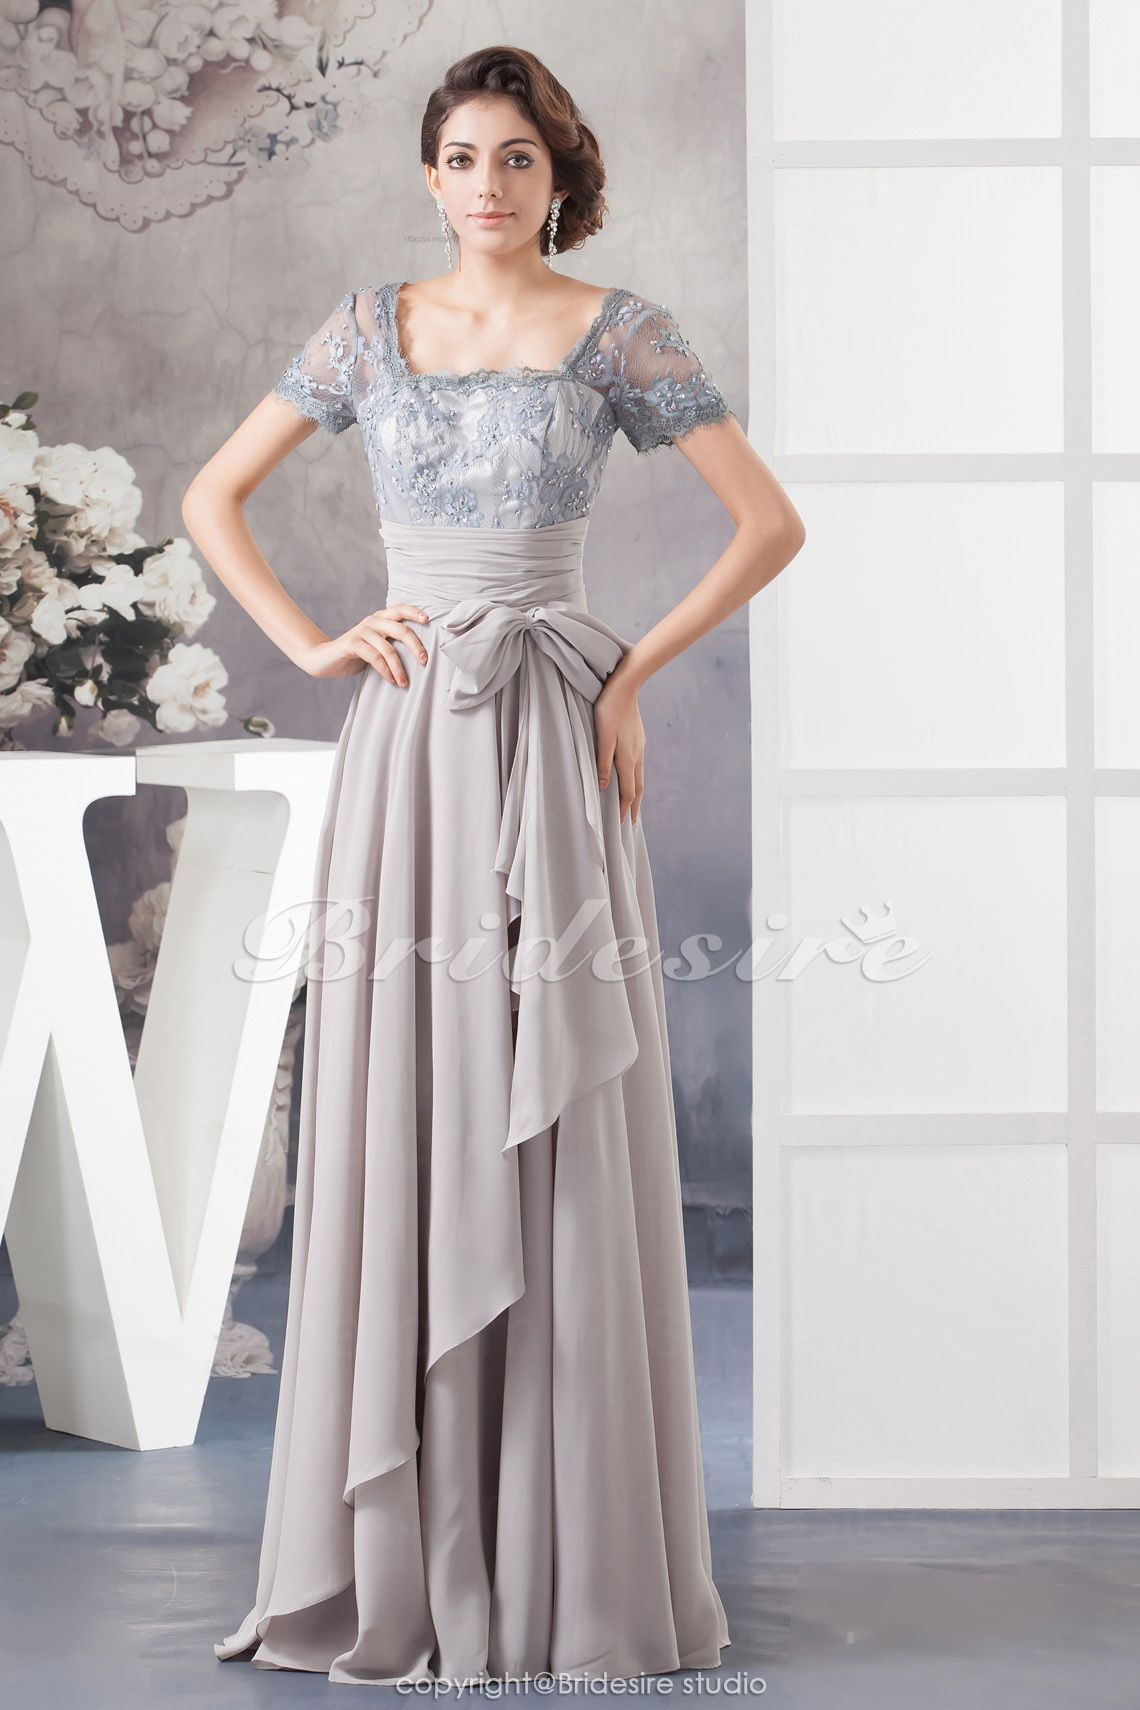 Dresses to wear to a wedding as a guest in april  Bridesire  Aline Square Floorlength Short Sleeve Chiffon Lace